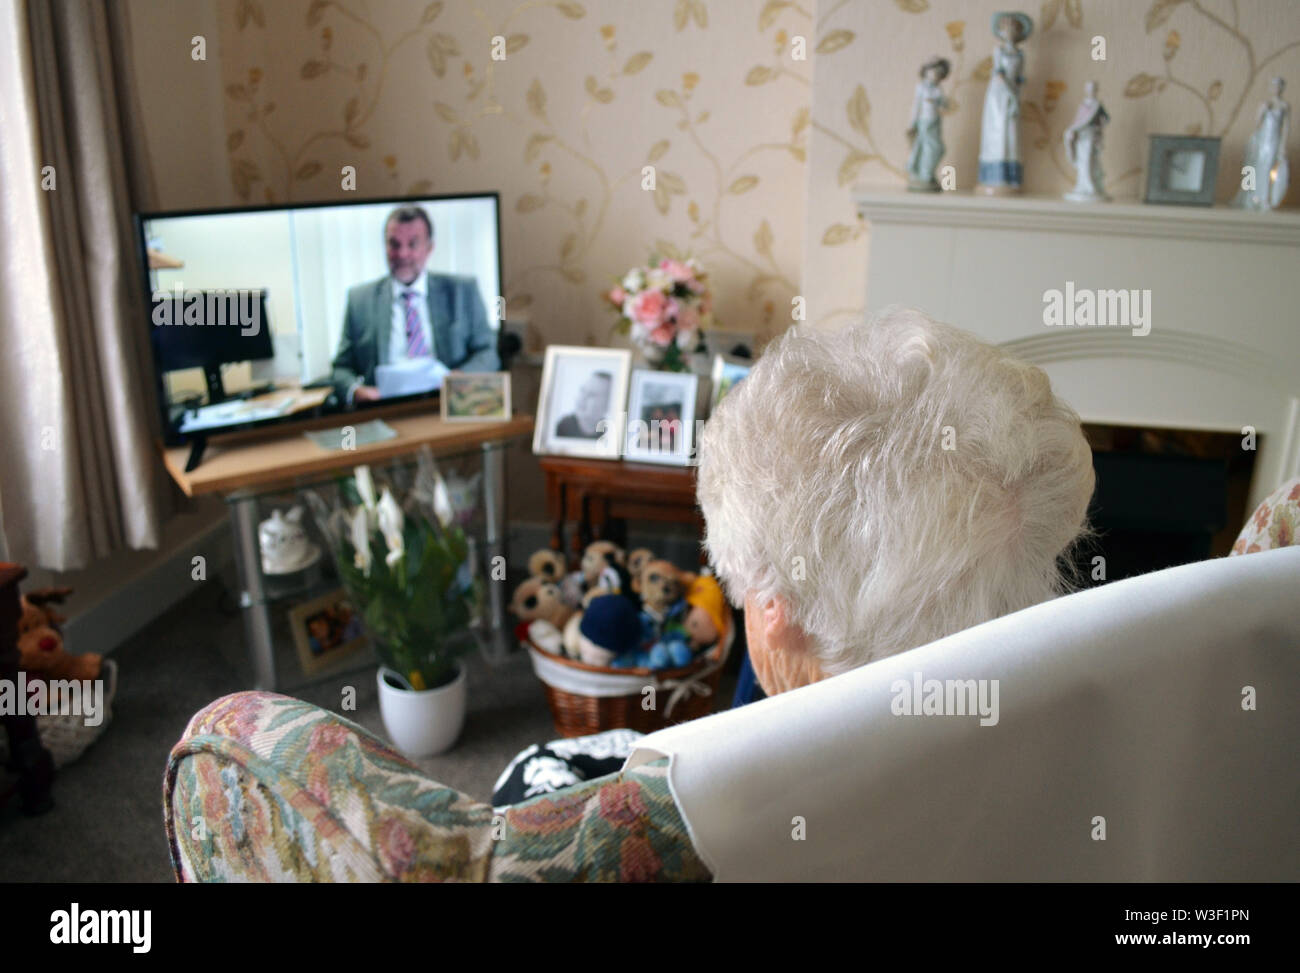 London, UK. 09th July, 2019. 93-year-old Irene sits in her living room in front of the television. In Great Britain, there is a heated debate about the recent decision of the BBC to re-invest over 75-year-olds in radio licence fees. From June 2020, they will also have to pay the 154.50 pounds (equivalent to around 172 euros) annually. Since 1999, senior citizens have been excluded. Credit: Christoph Meyer/dpa/Alamy Live News Stock Photo